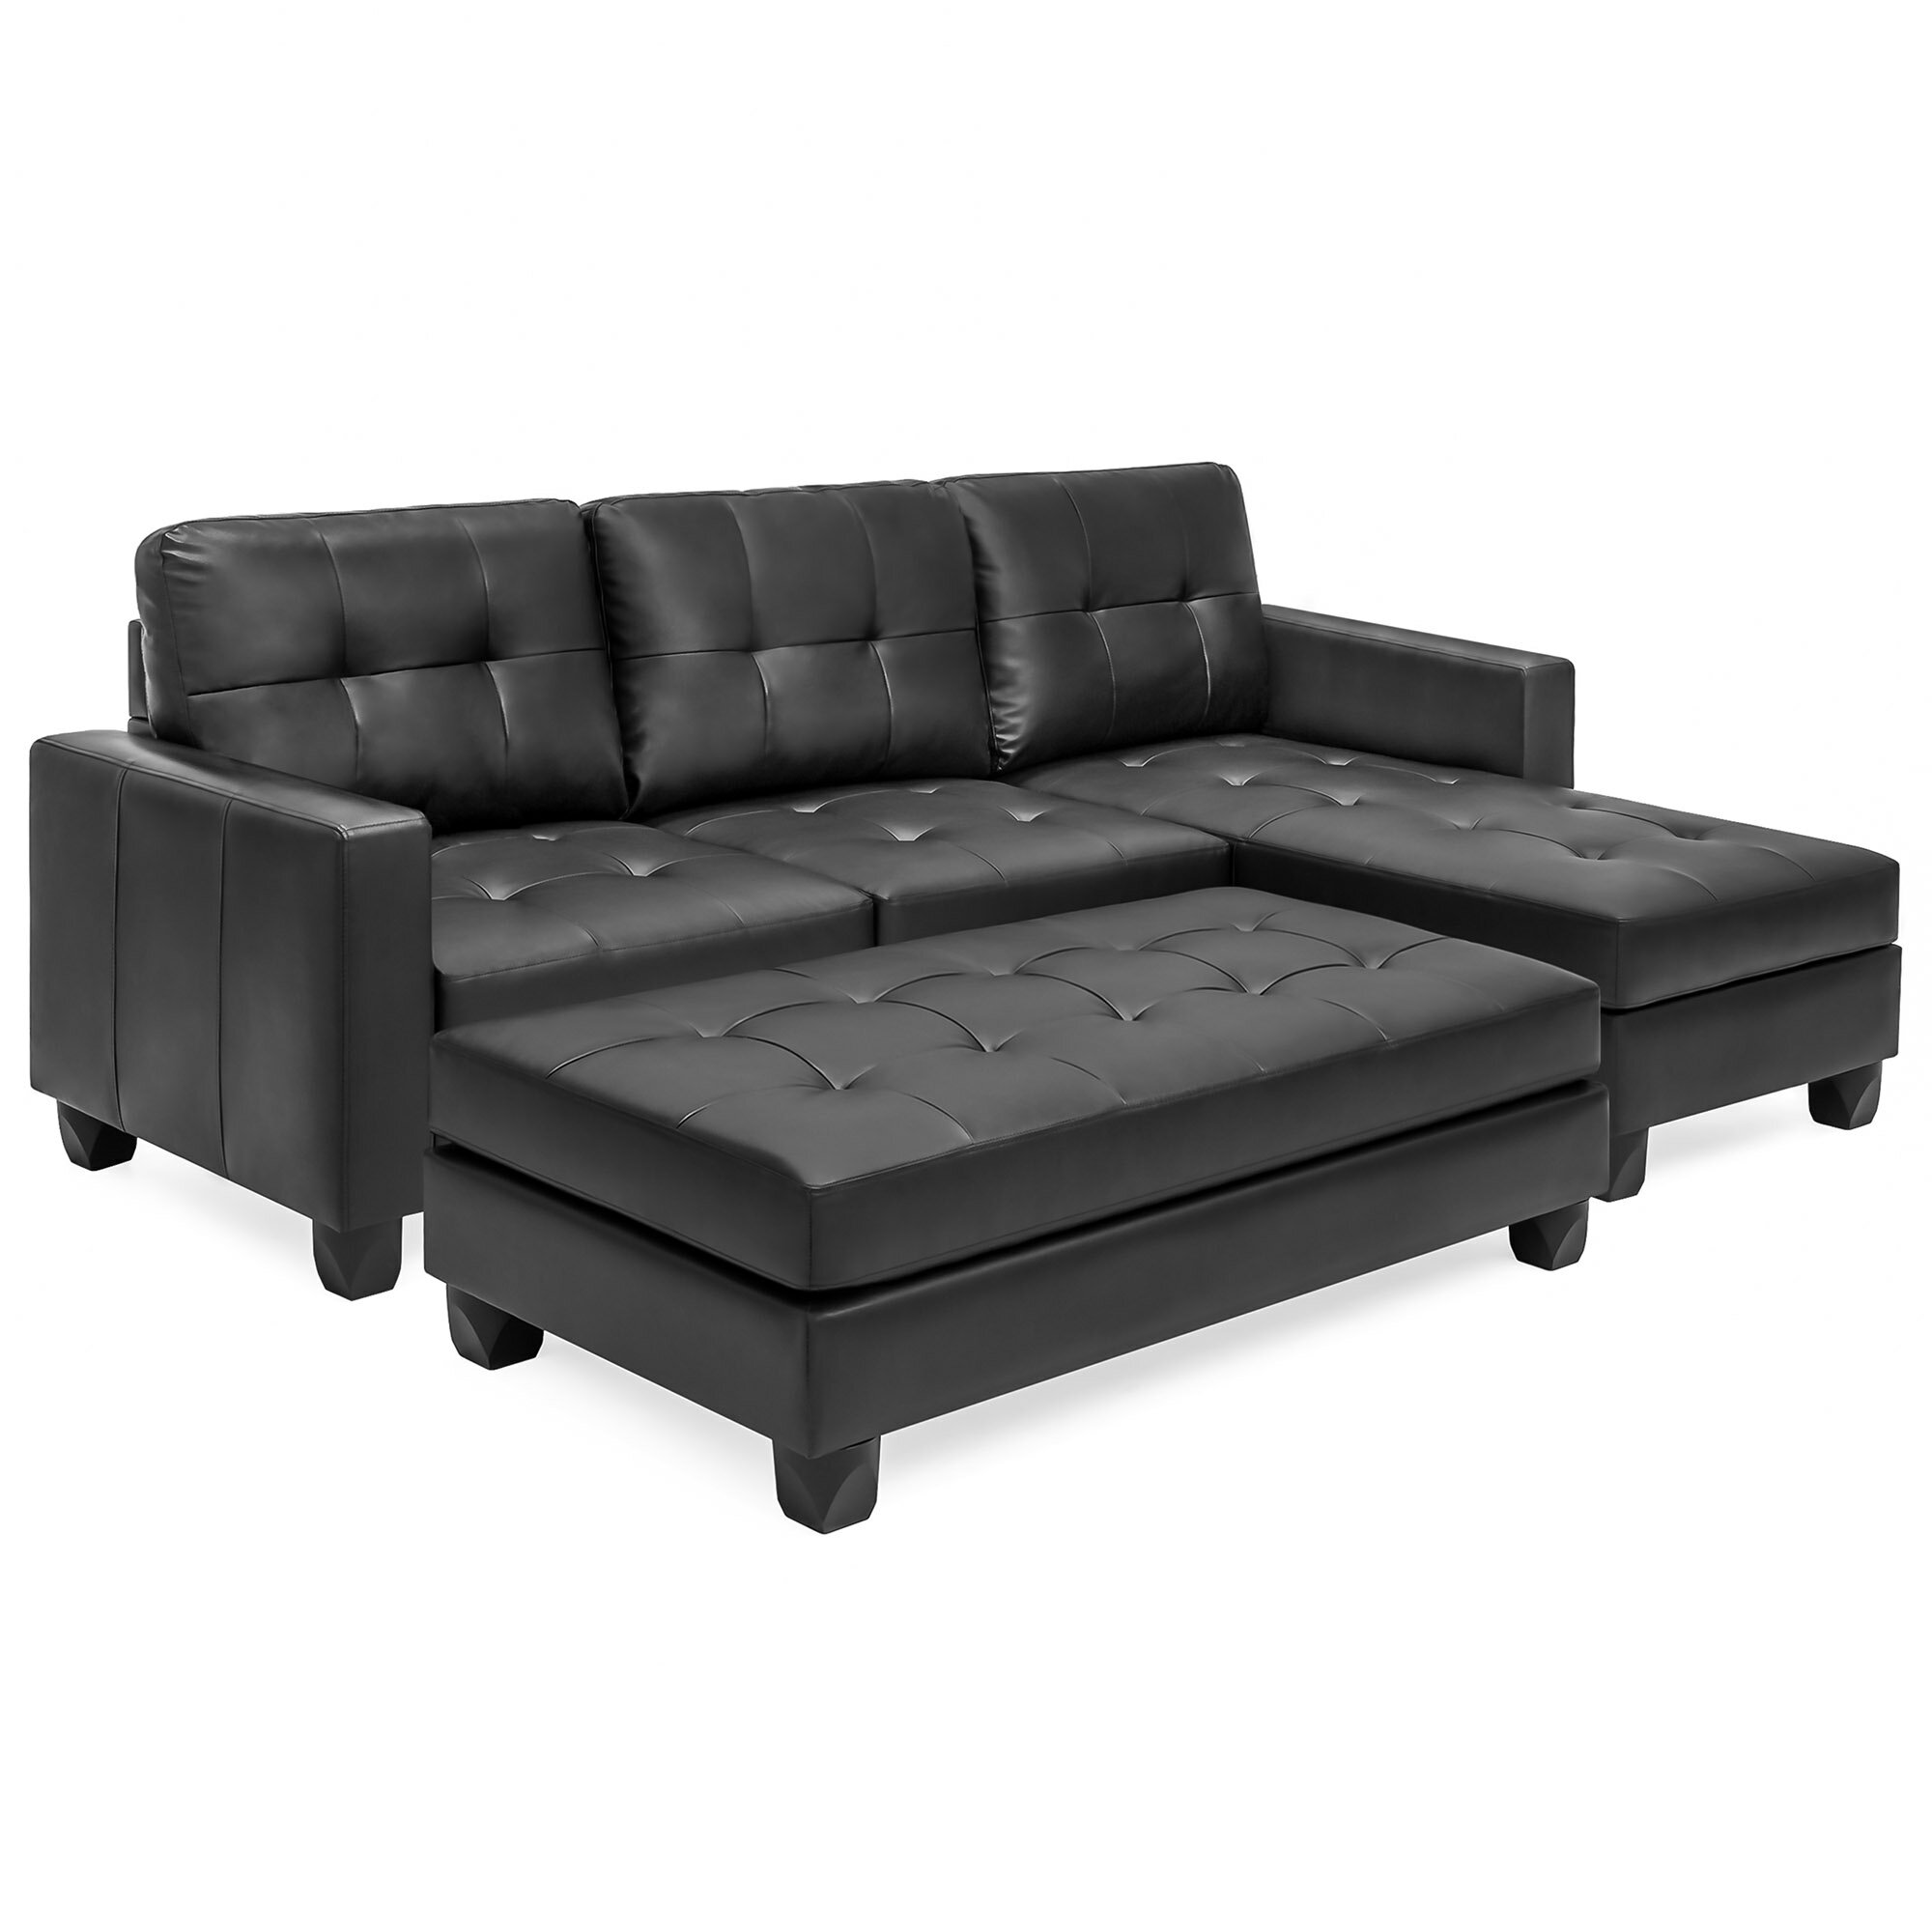 Bestchoiceproducts Best Choice Products 3 Seat L Shape Tufted Faux